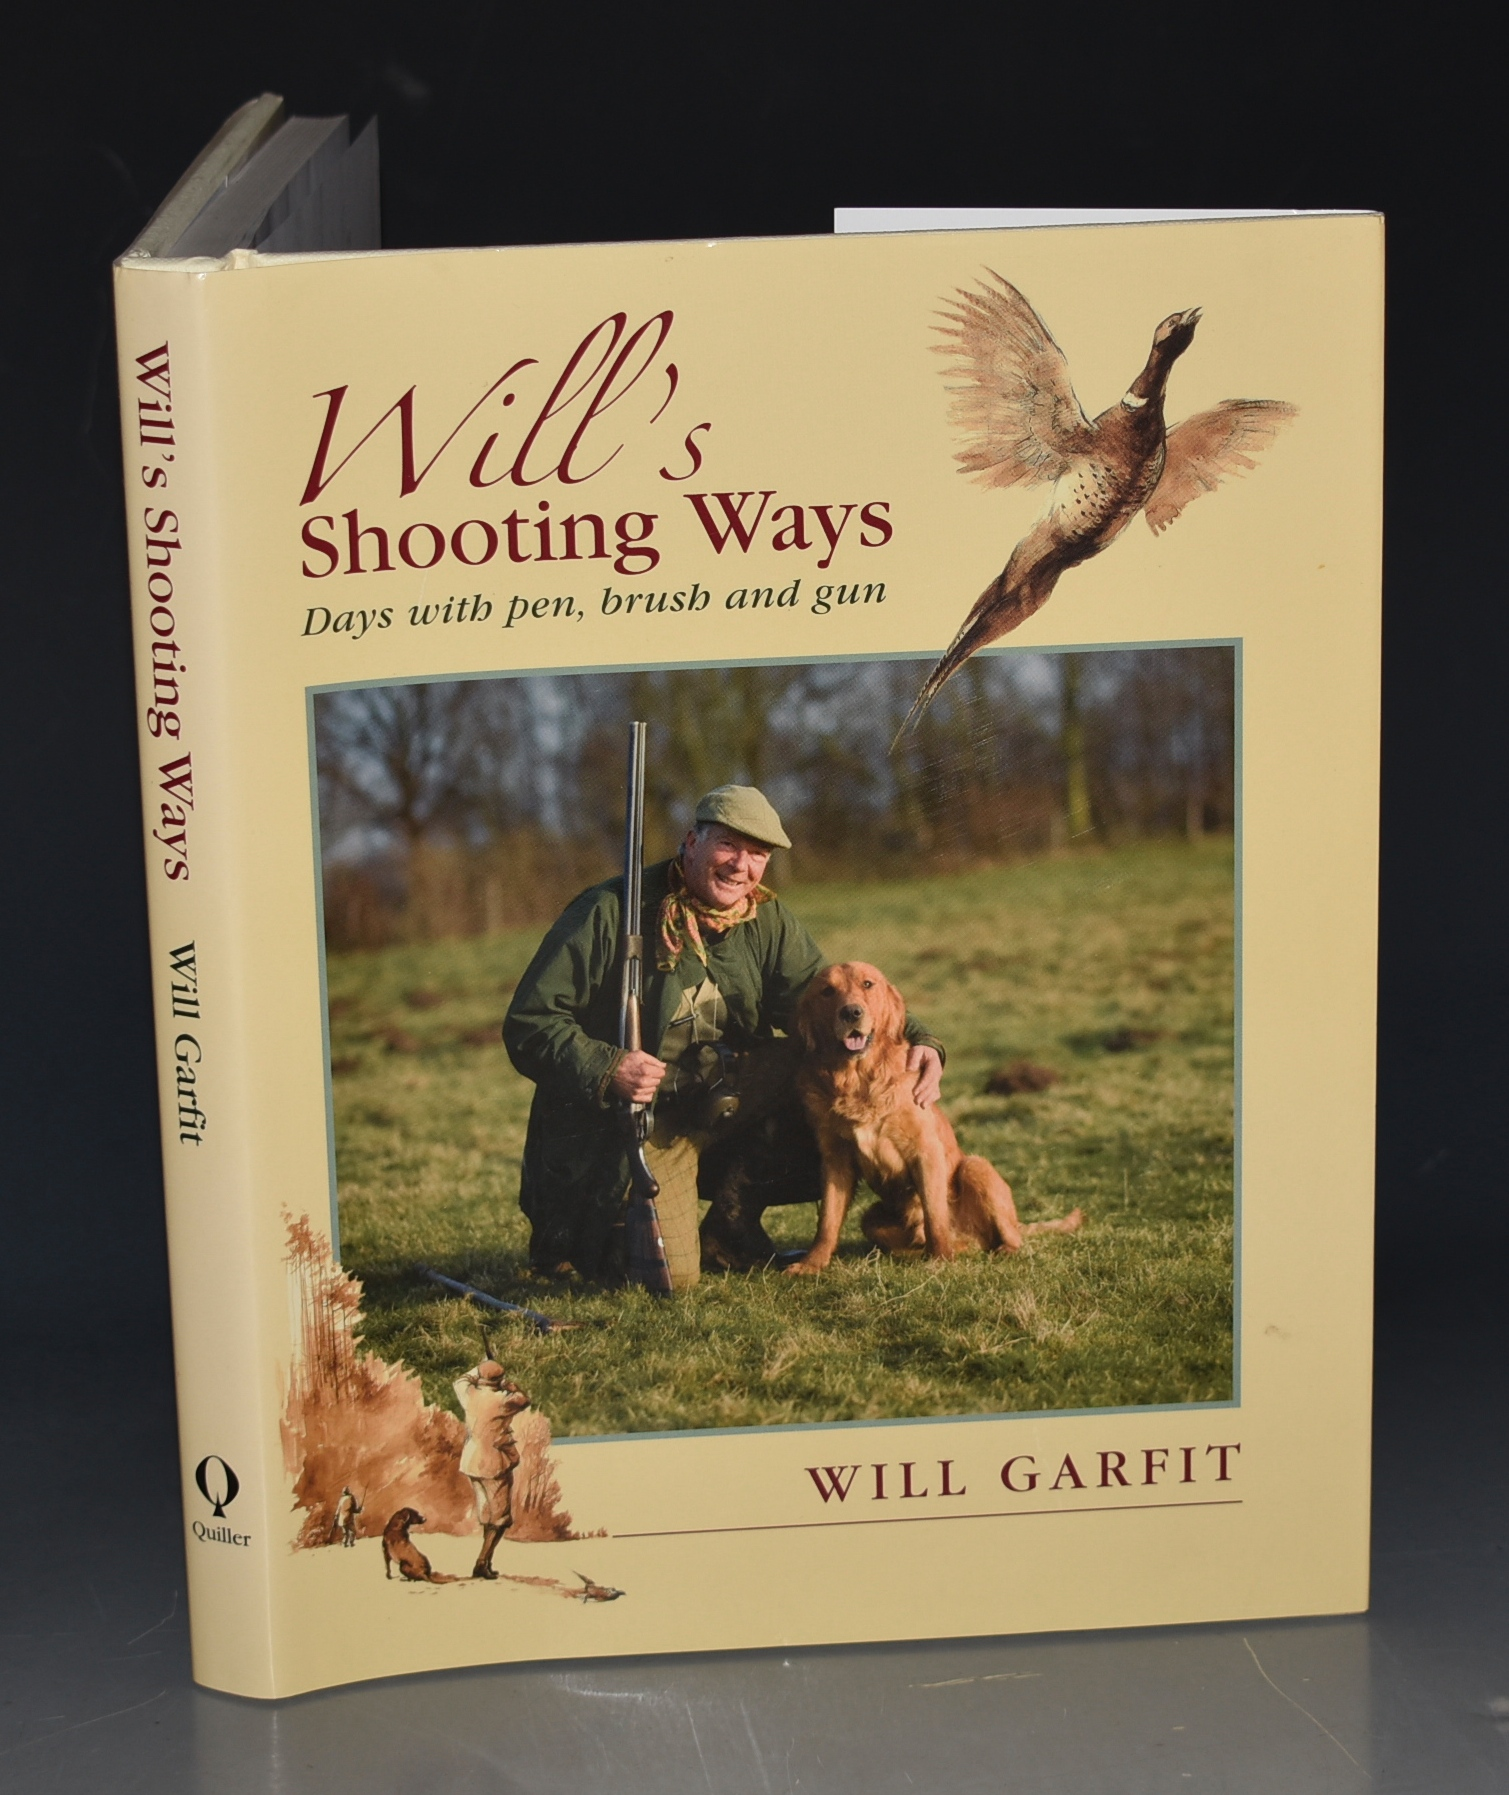 Image for Will's Shooting Ways Days with Pen, Brush & Gun. SIGNED.